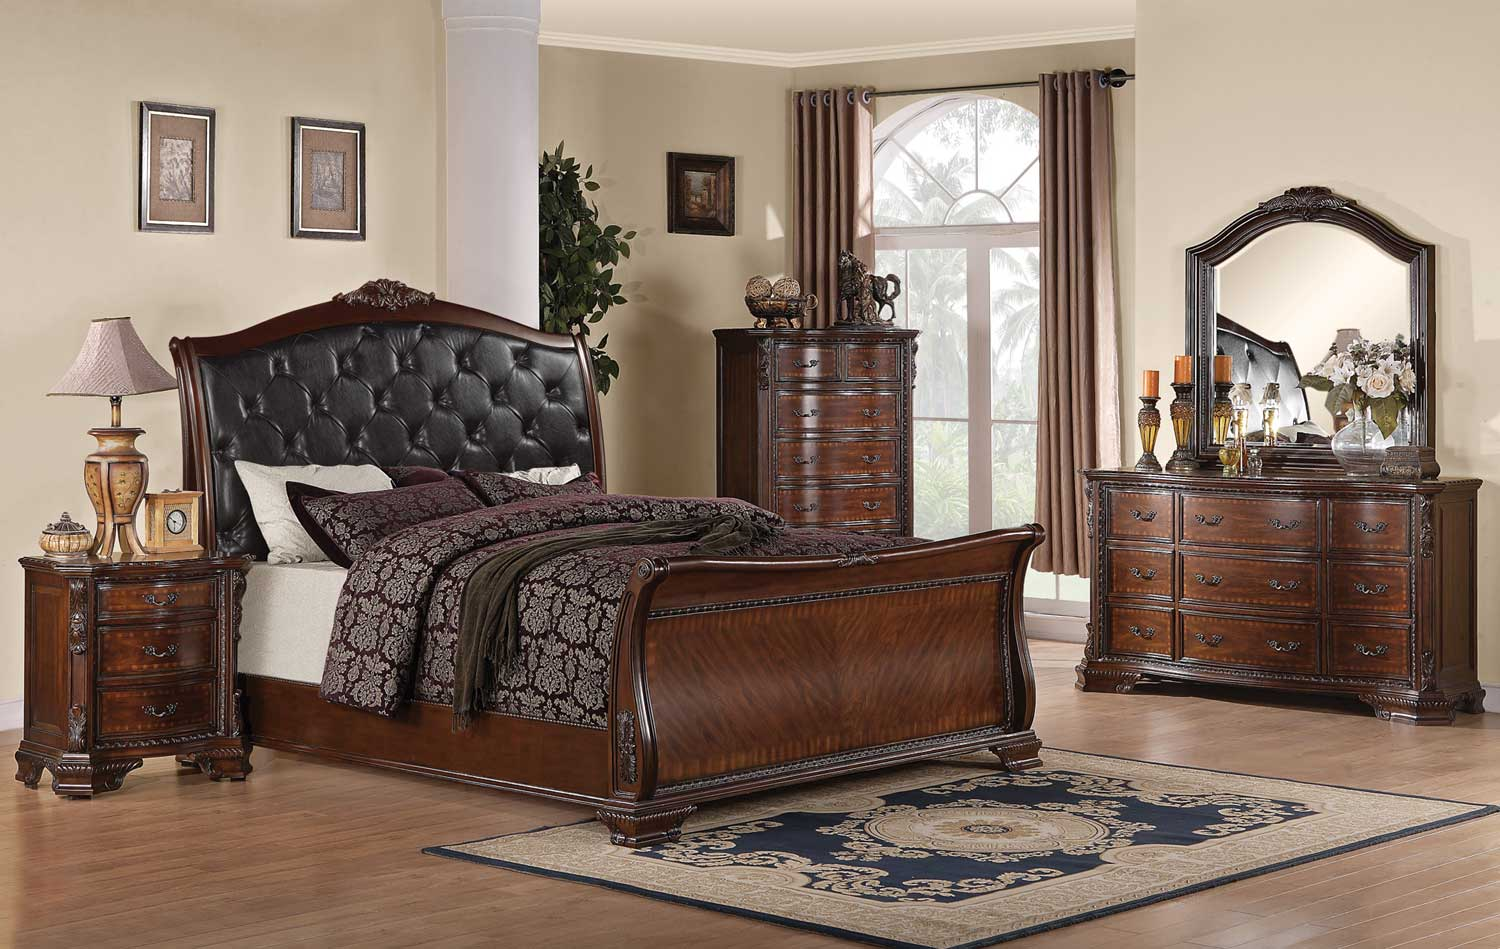 Coaster Maddison Bedroom Set Brown Cherry BedSet at Homelement